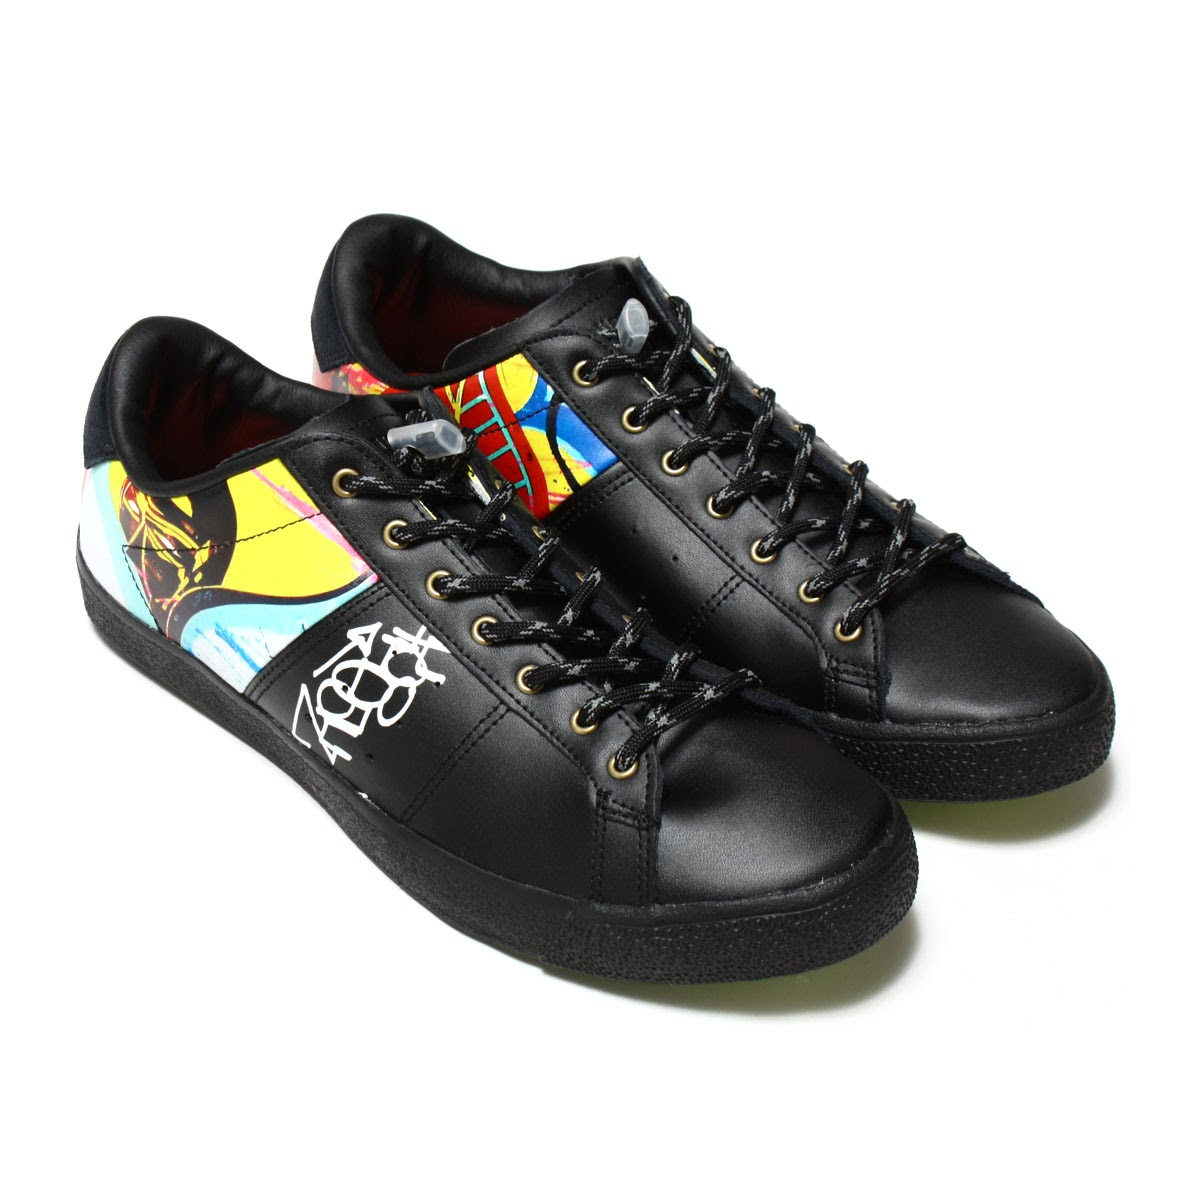 Onitsuka Tiger LAWNSHIP (オニツカタイガー 대출 대표) (TITI FREAK) BLACK 16AW-S